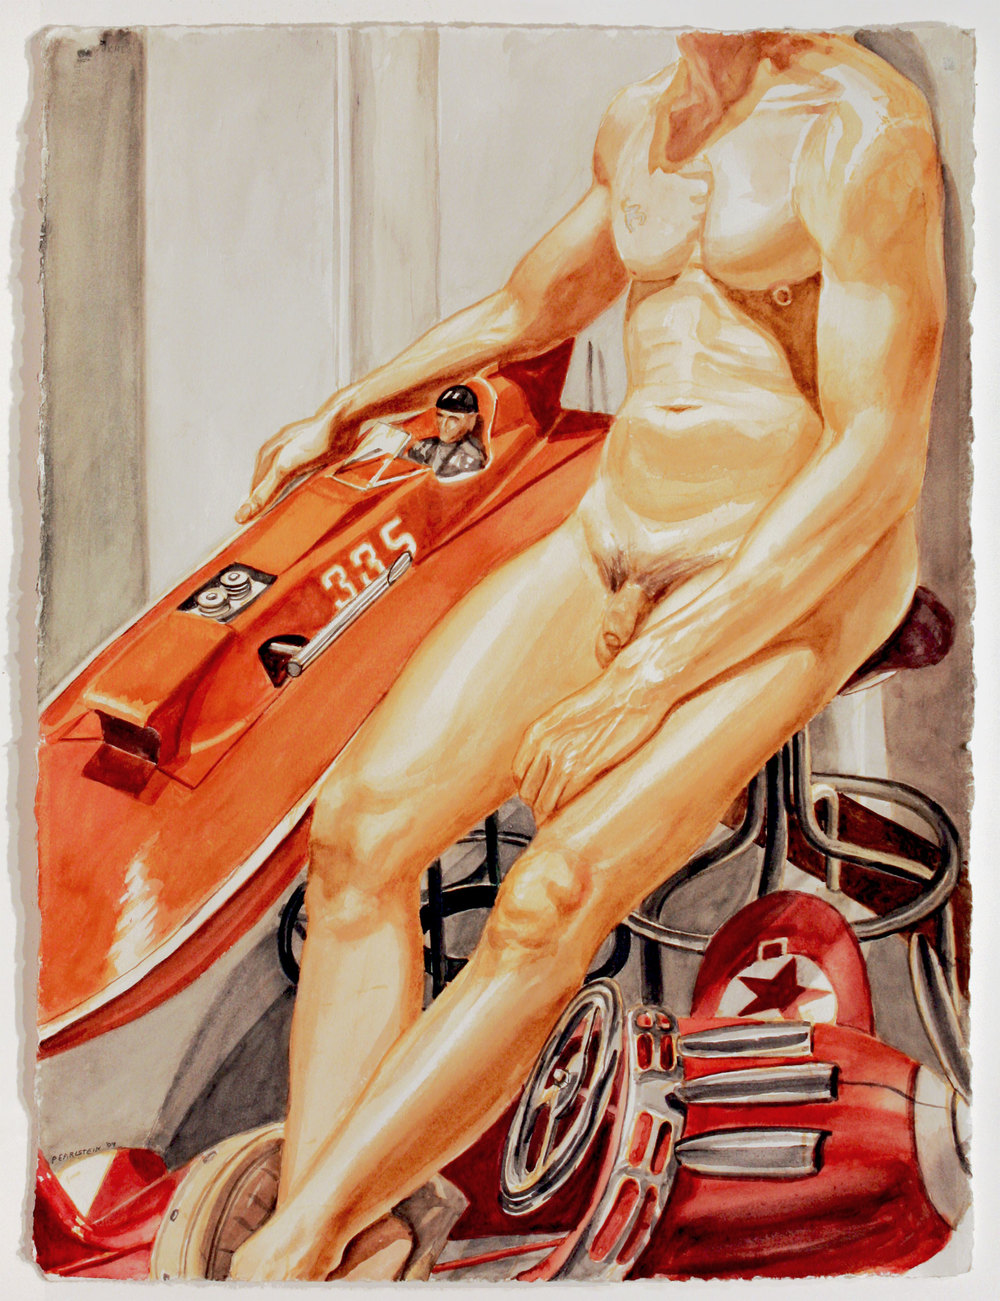 Nude Male with Kiddie Car Airplane and Model Speedboat , 2010 Watercolor on paper 30 1/4 x 22 1/2 inches